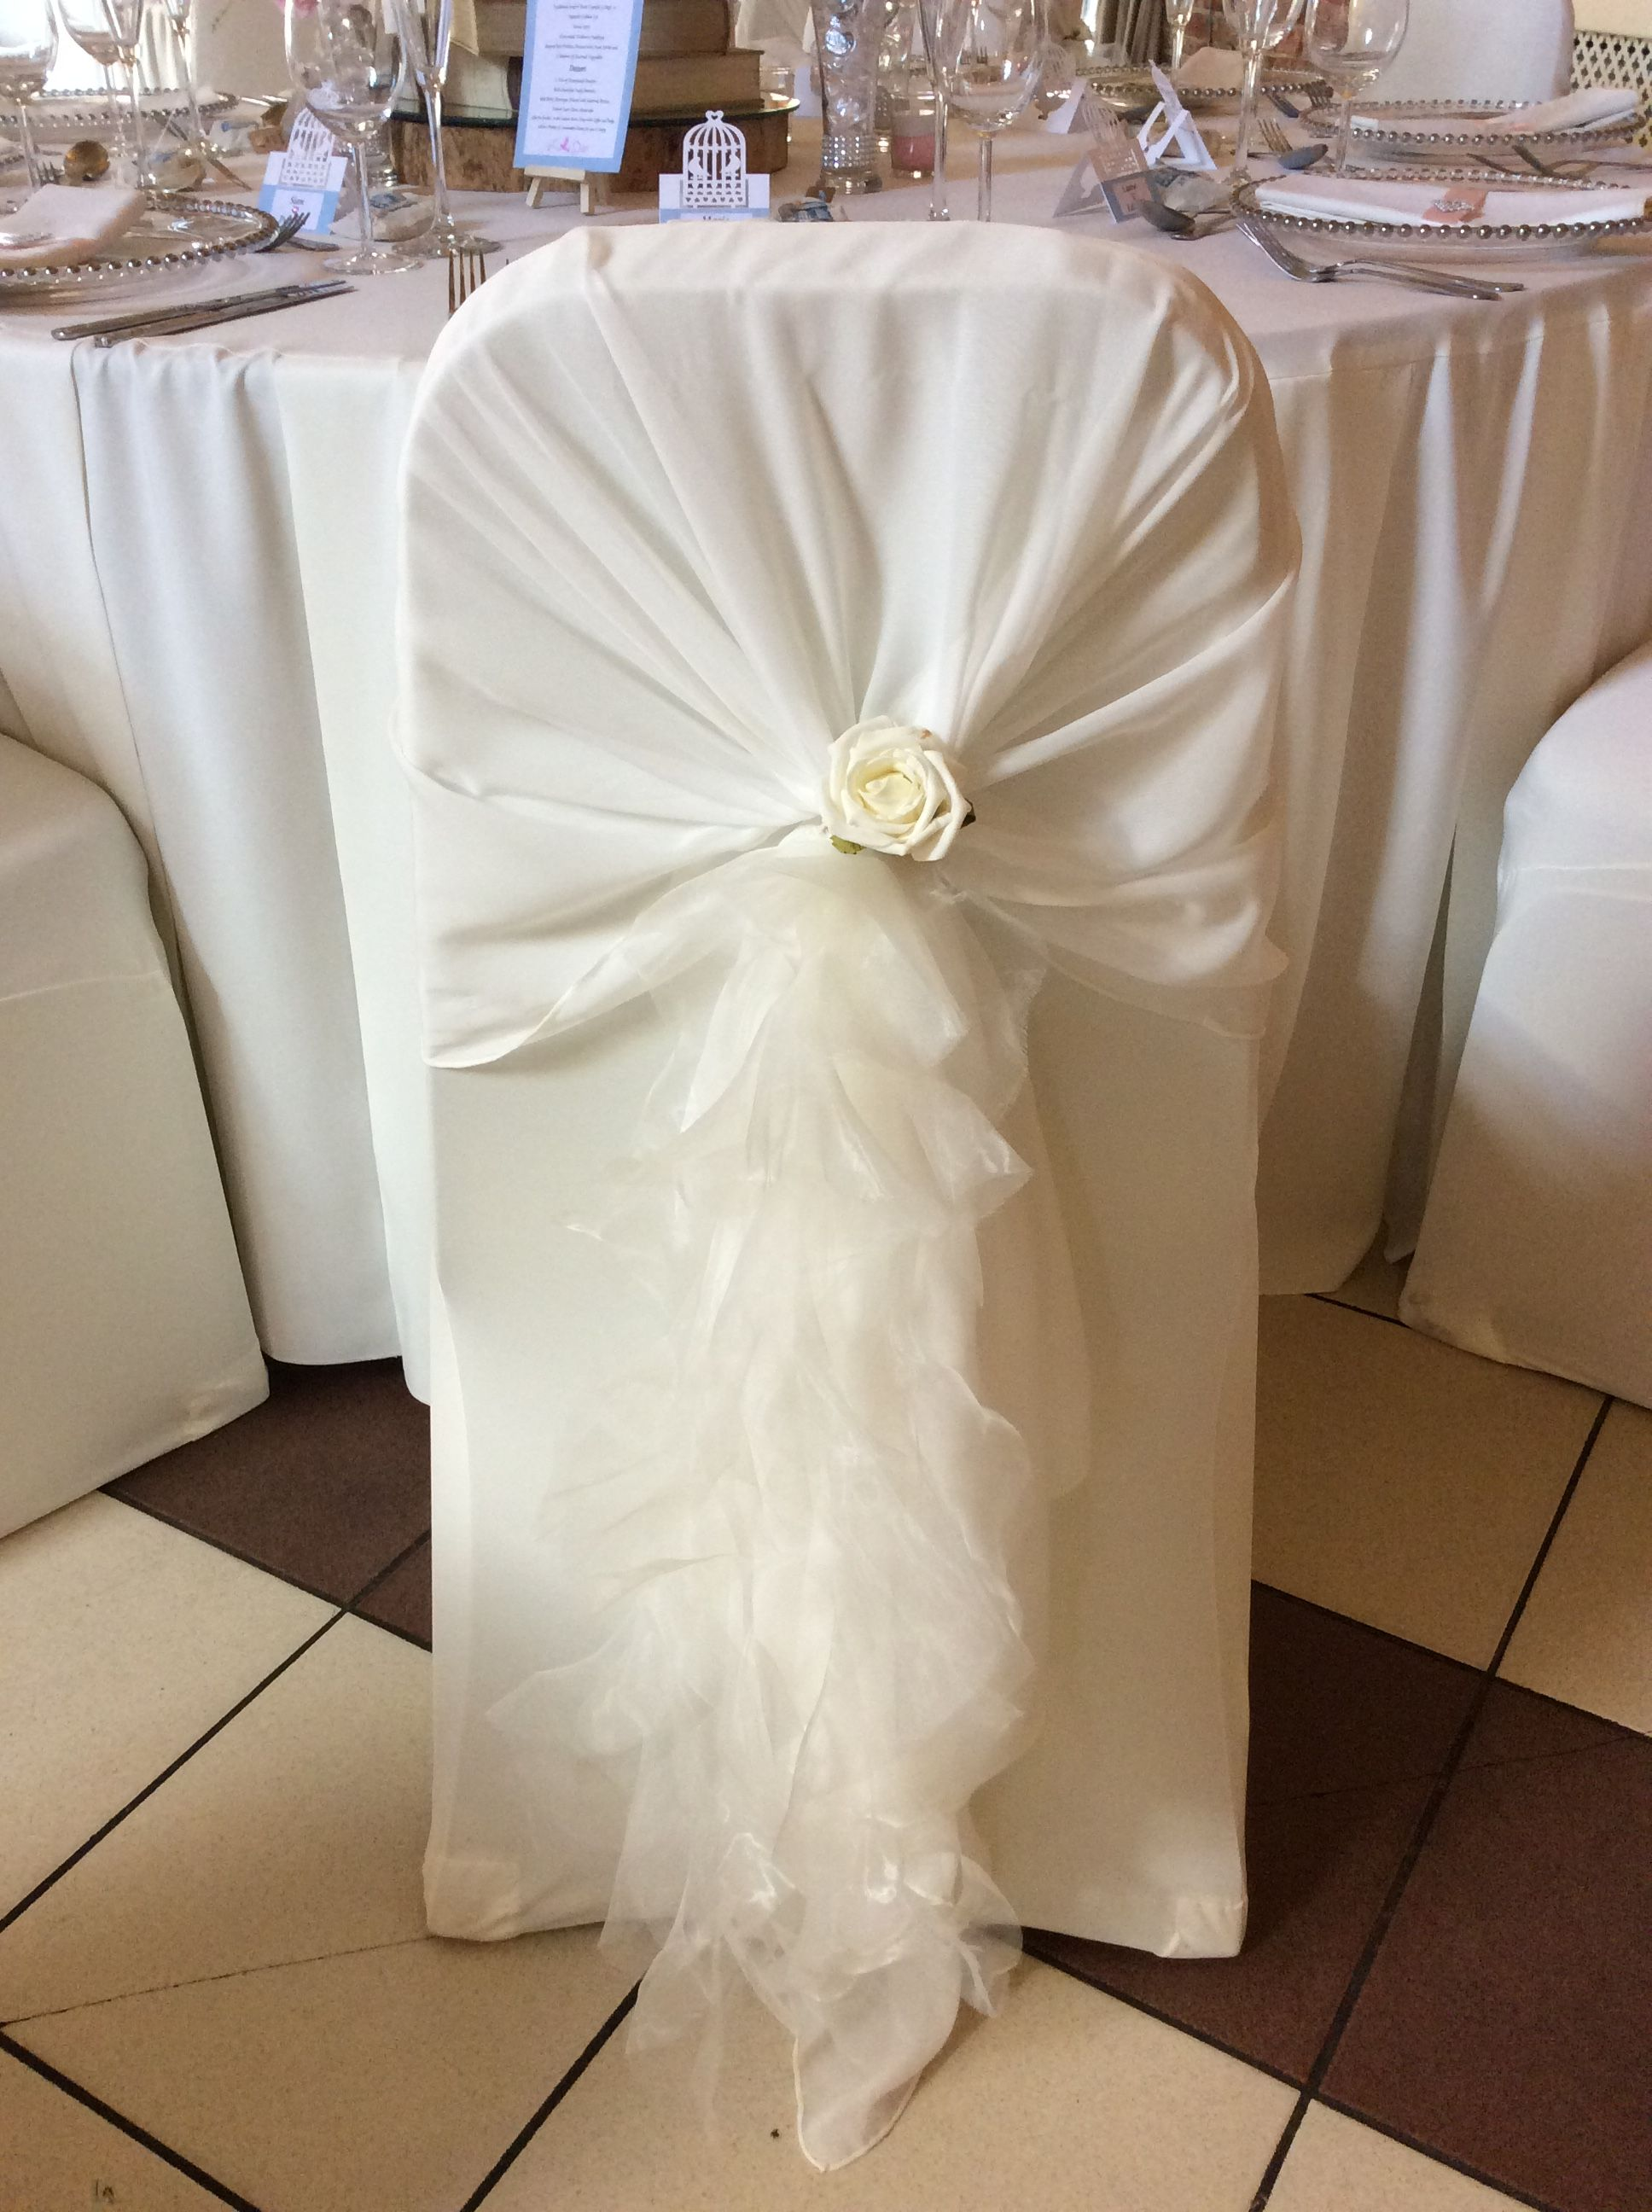 Ivory chair cover chiffon hood and frill with ivory rose detail